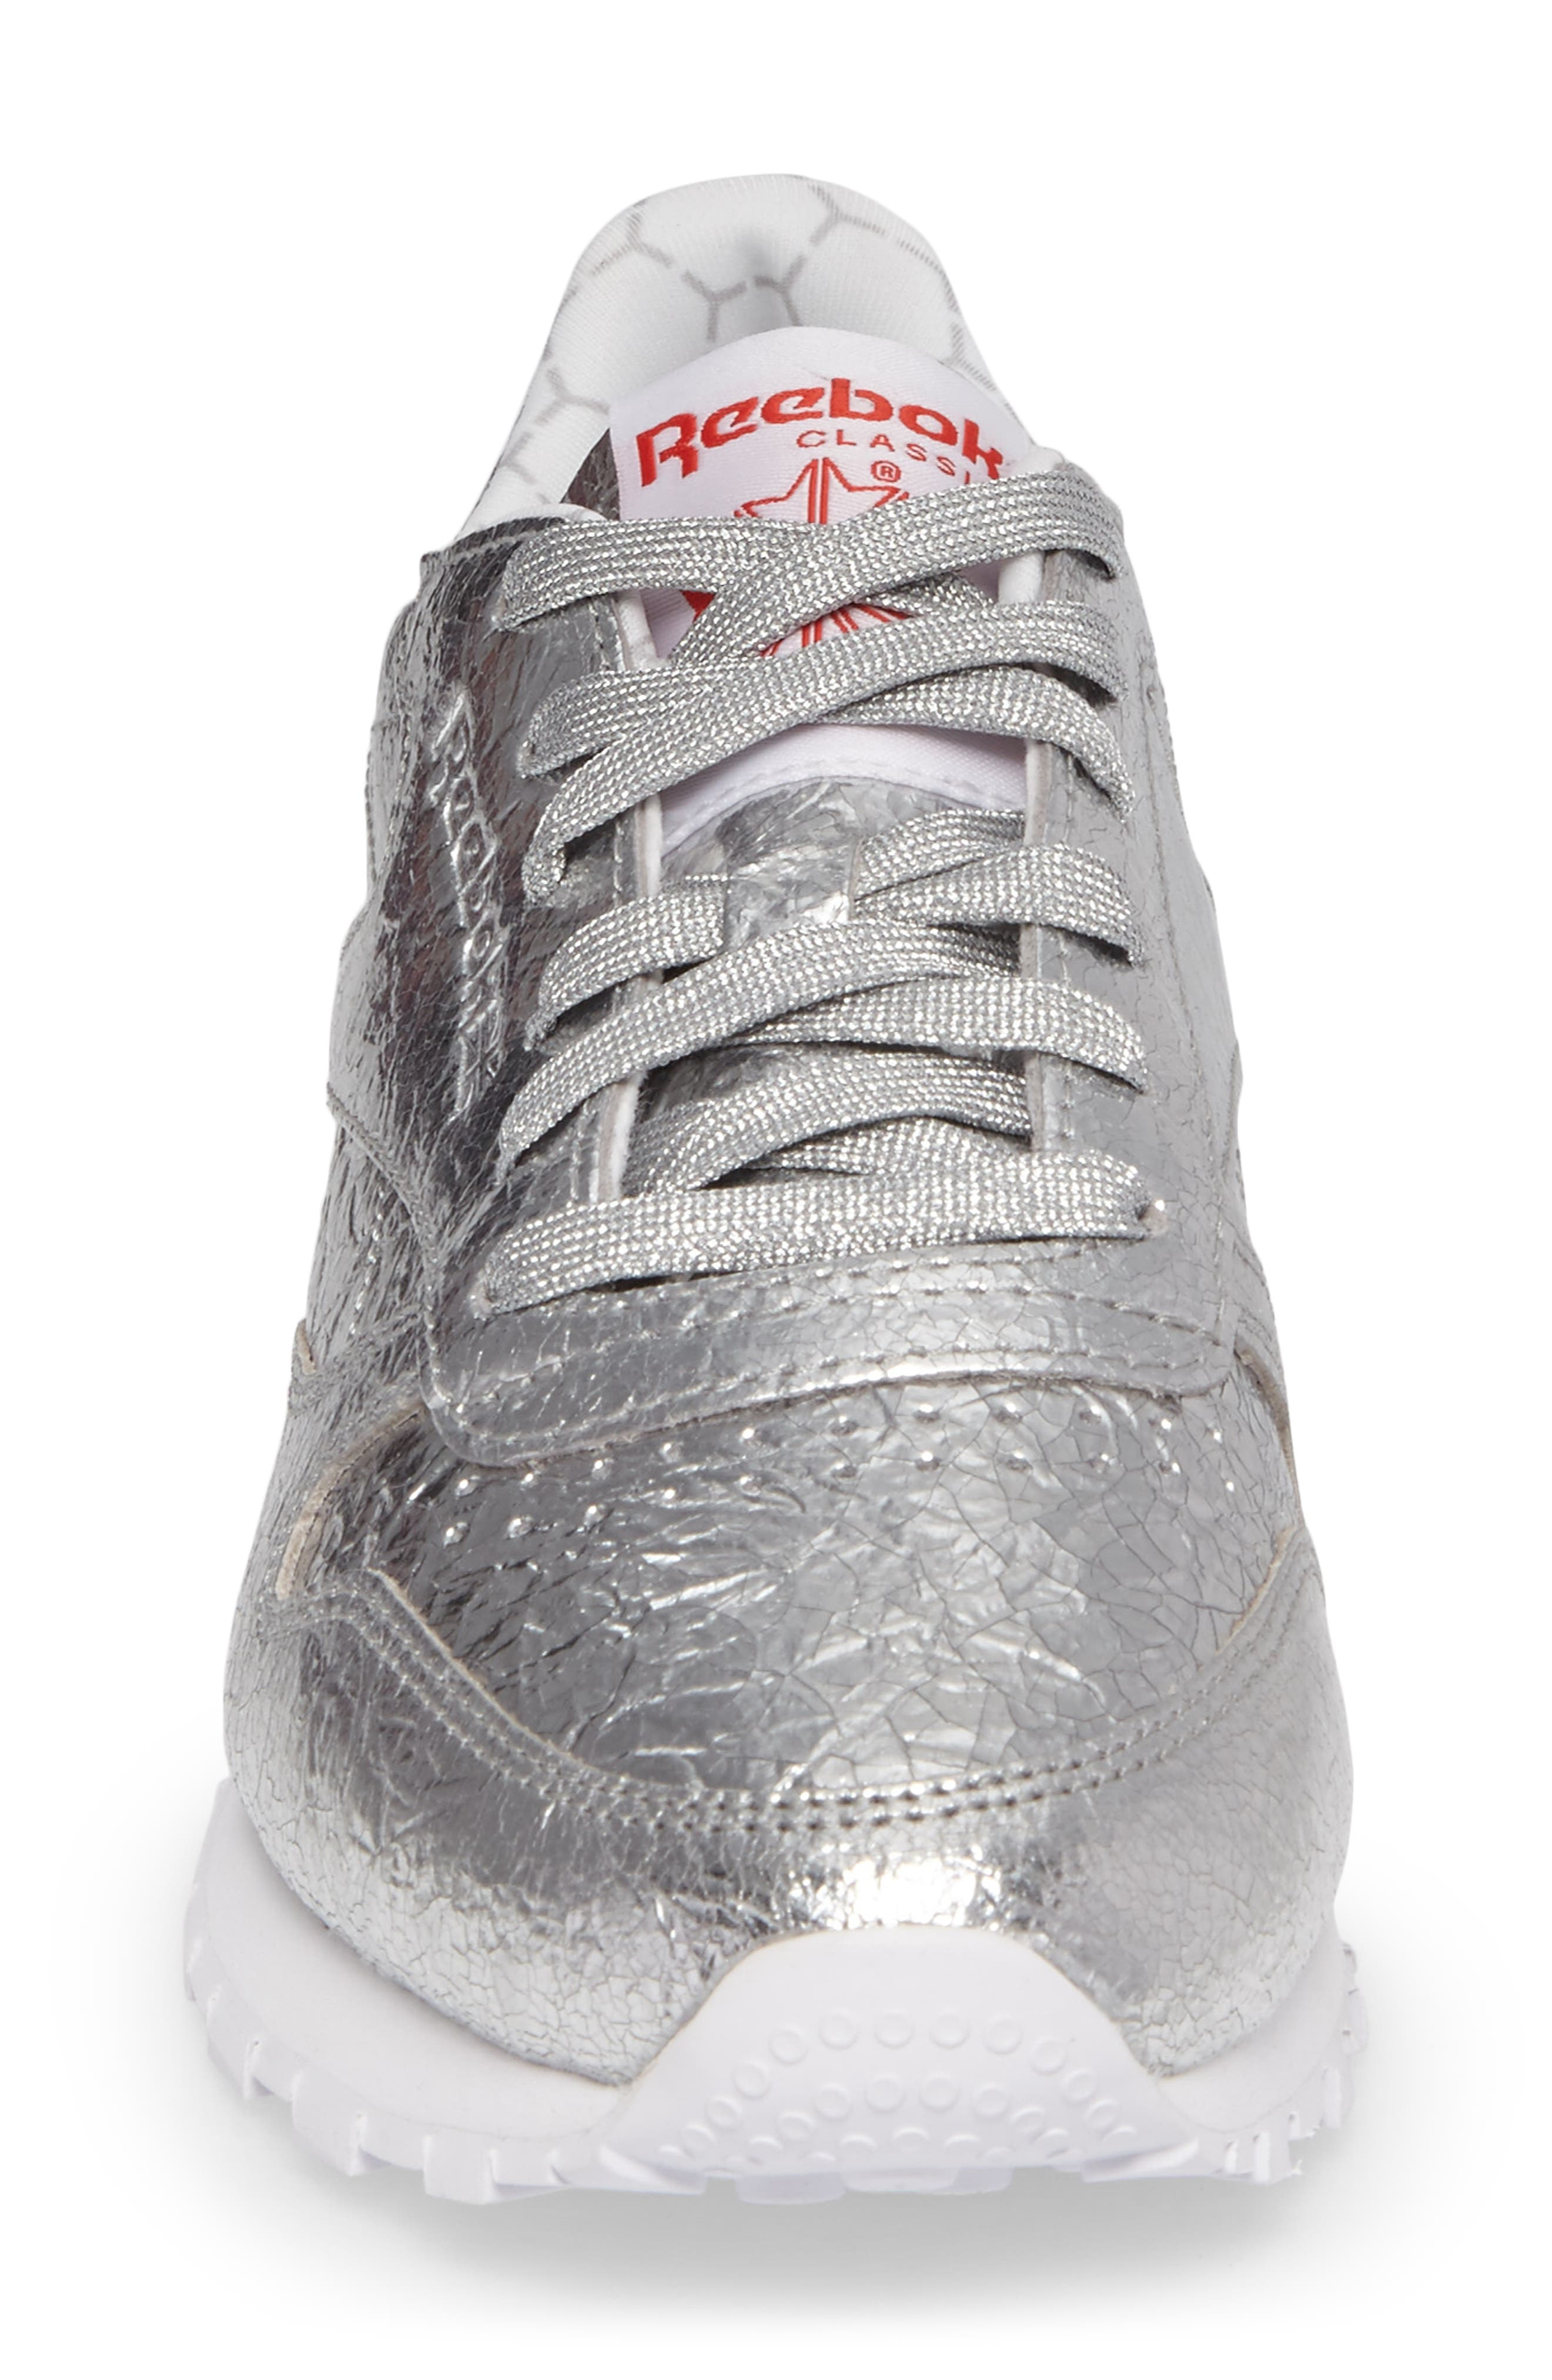 Classic Leather HD Foil Sneaker,                             Alternate thumbnail 4, color,                             Silver/ Grey/ Red/ White